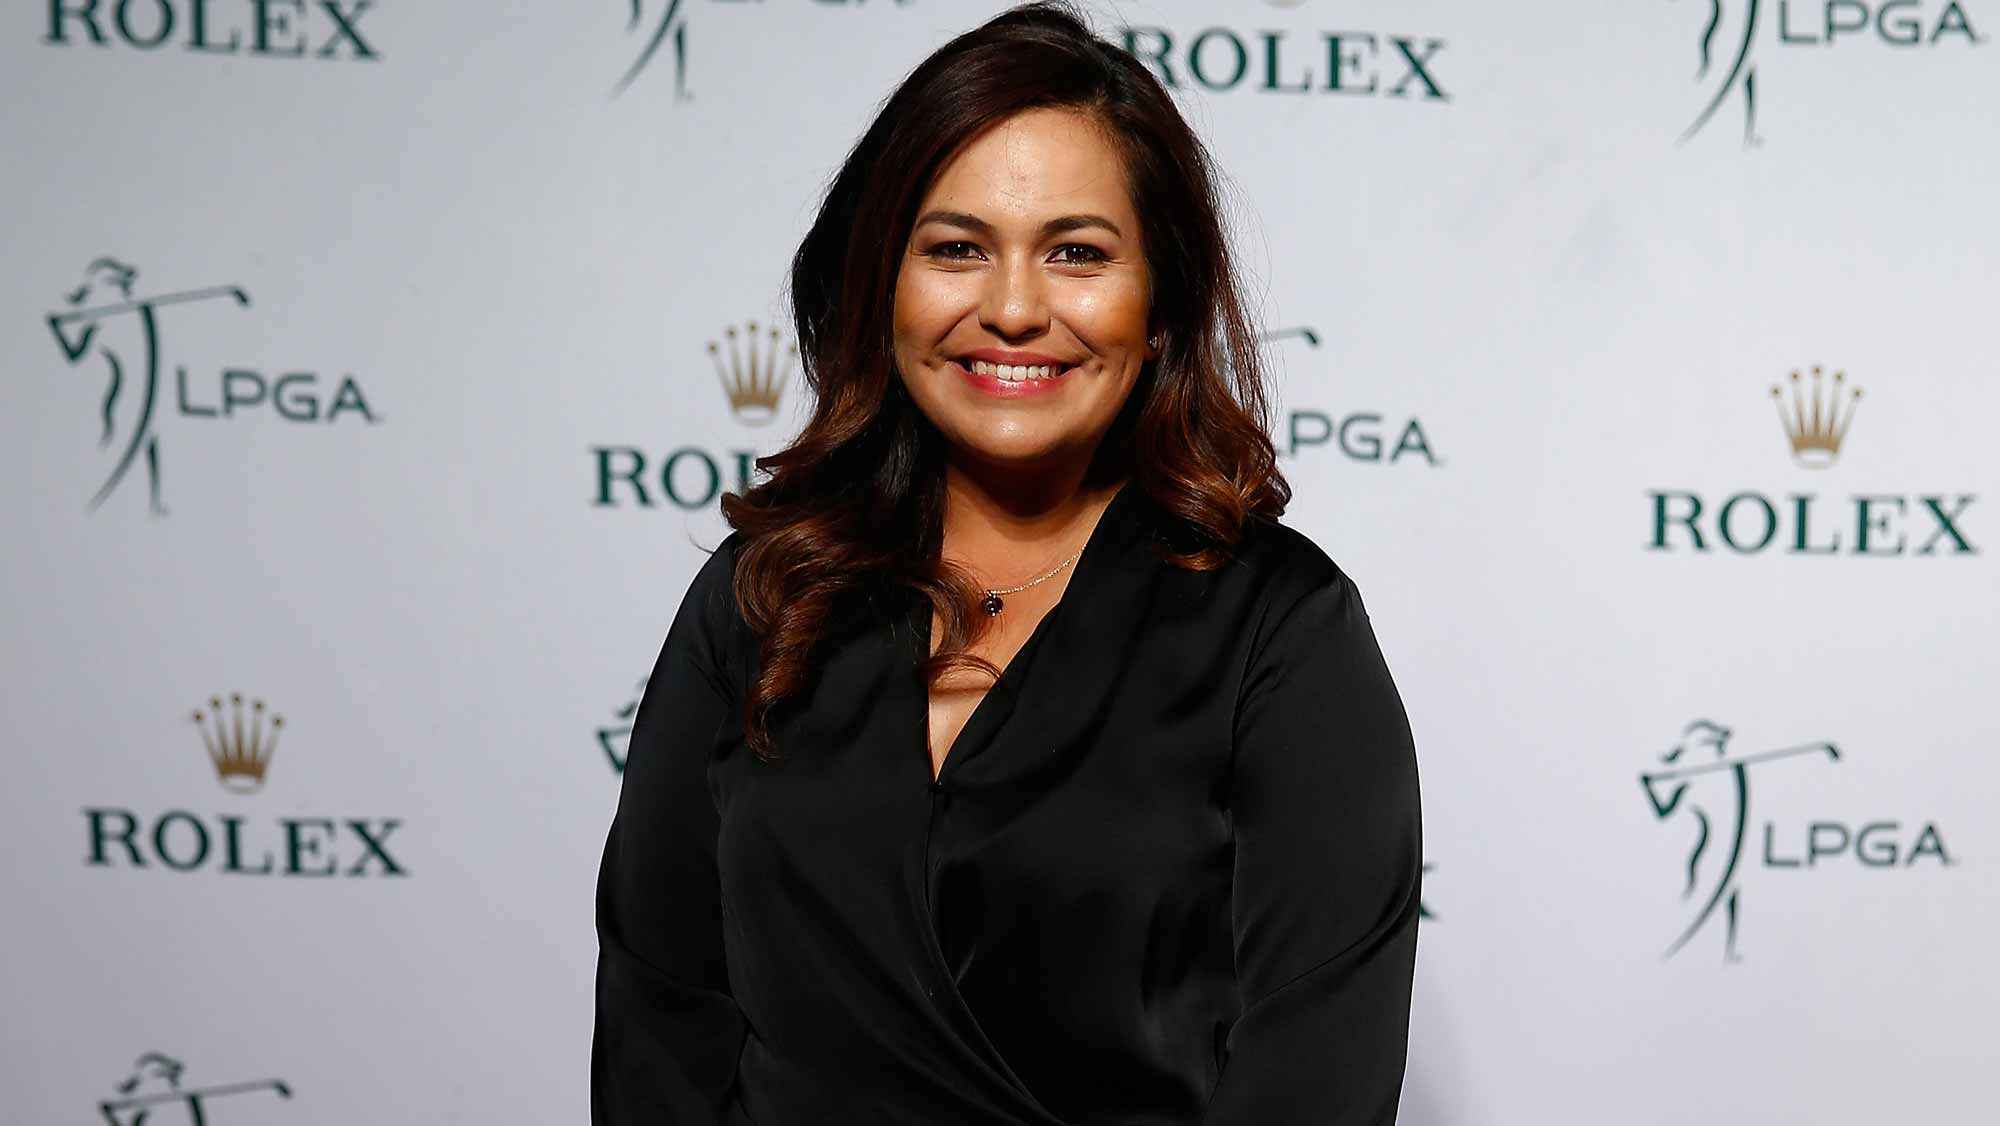 Lizette Salas during the Rolex Player Awards